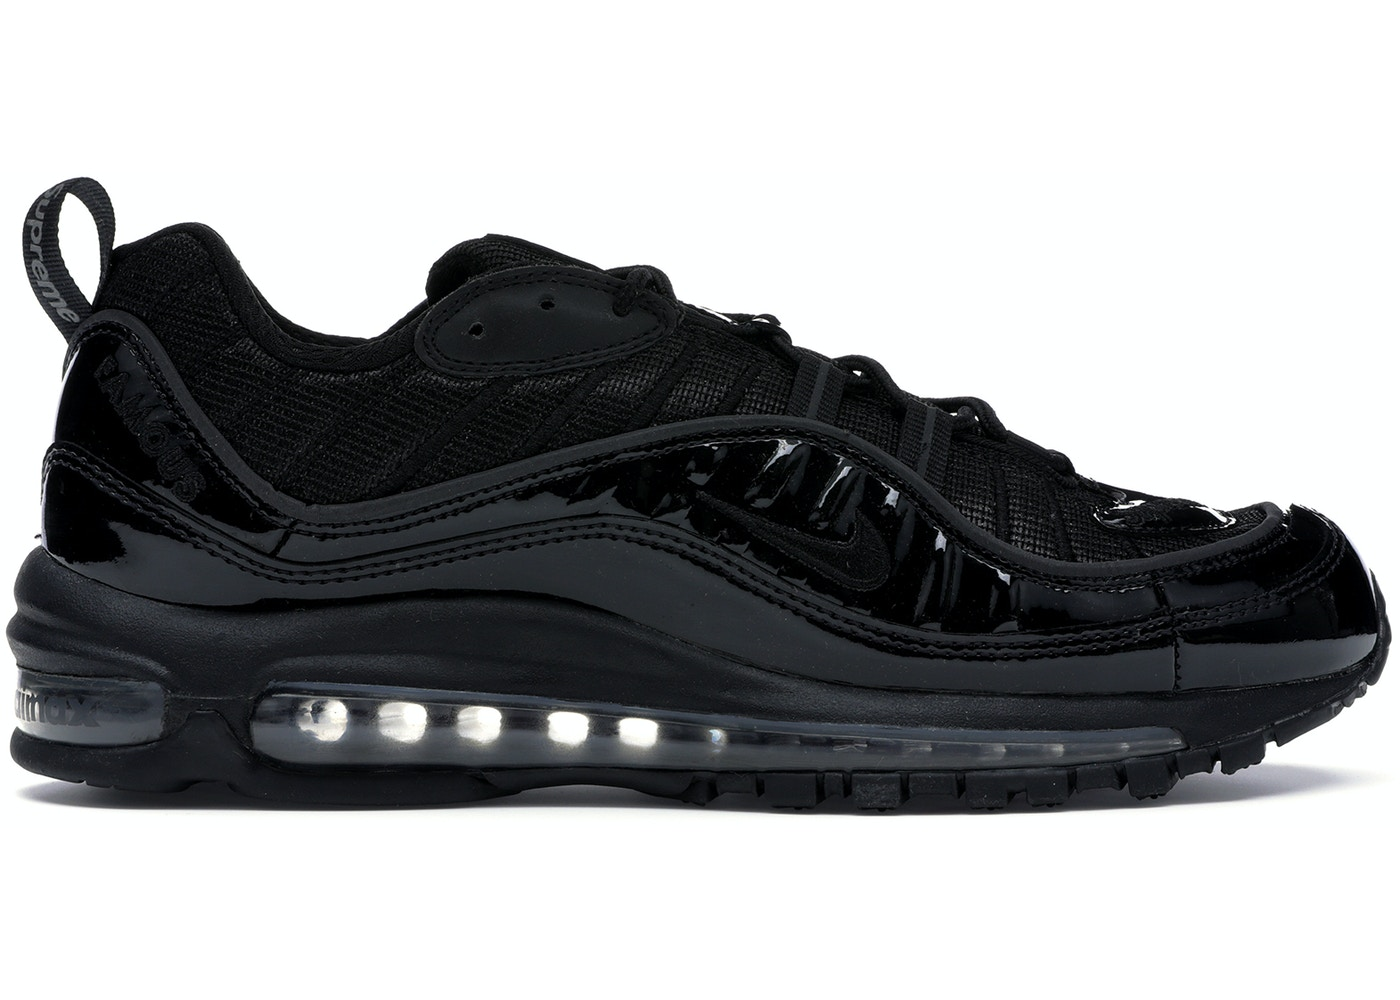 uk availability 68d1a b8fe5 Air Max 98 Supreme Black